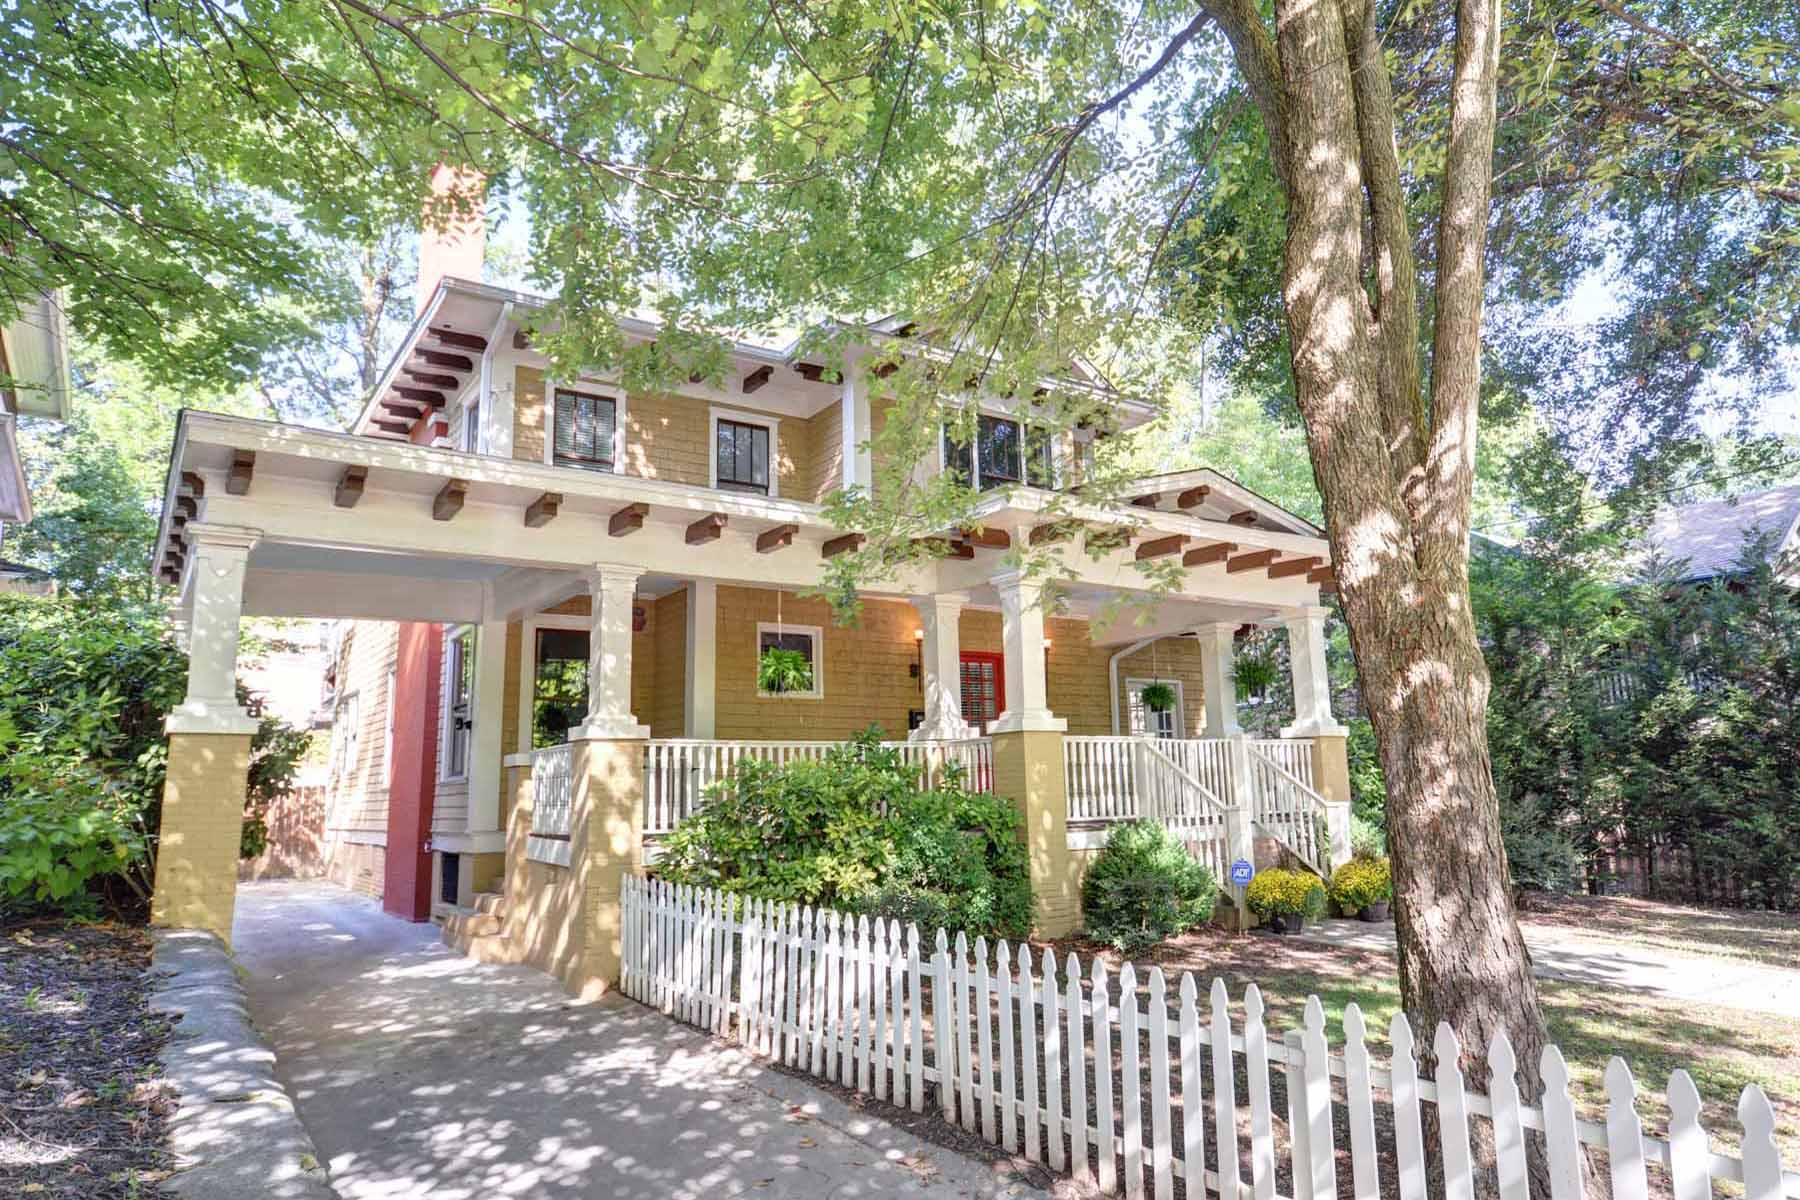 Single Family Home for Active at Completely Renovated Historic Midtown Home 698 Myrtle Street Atlanta, Georgia 30308 United States